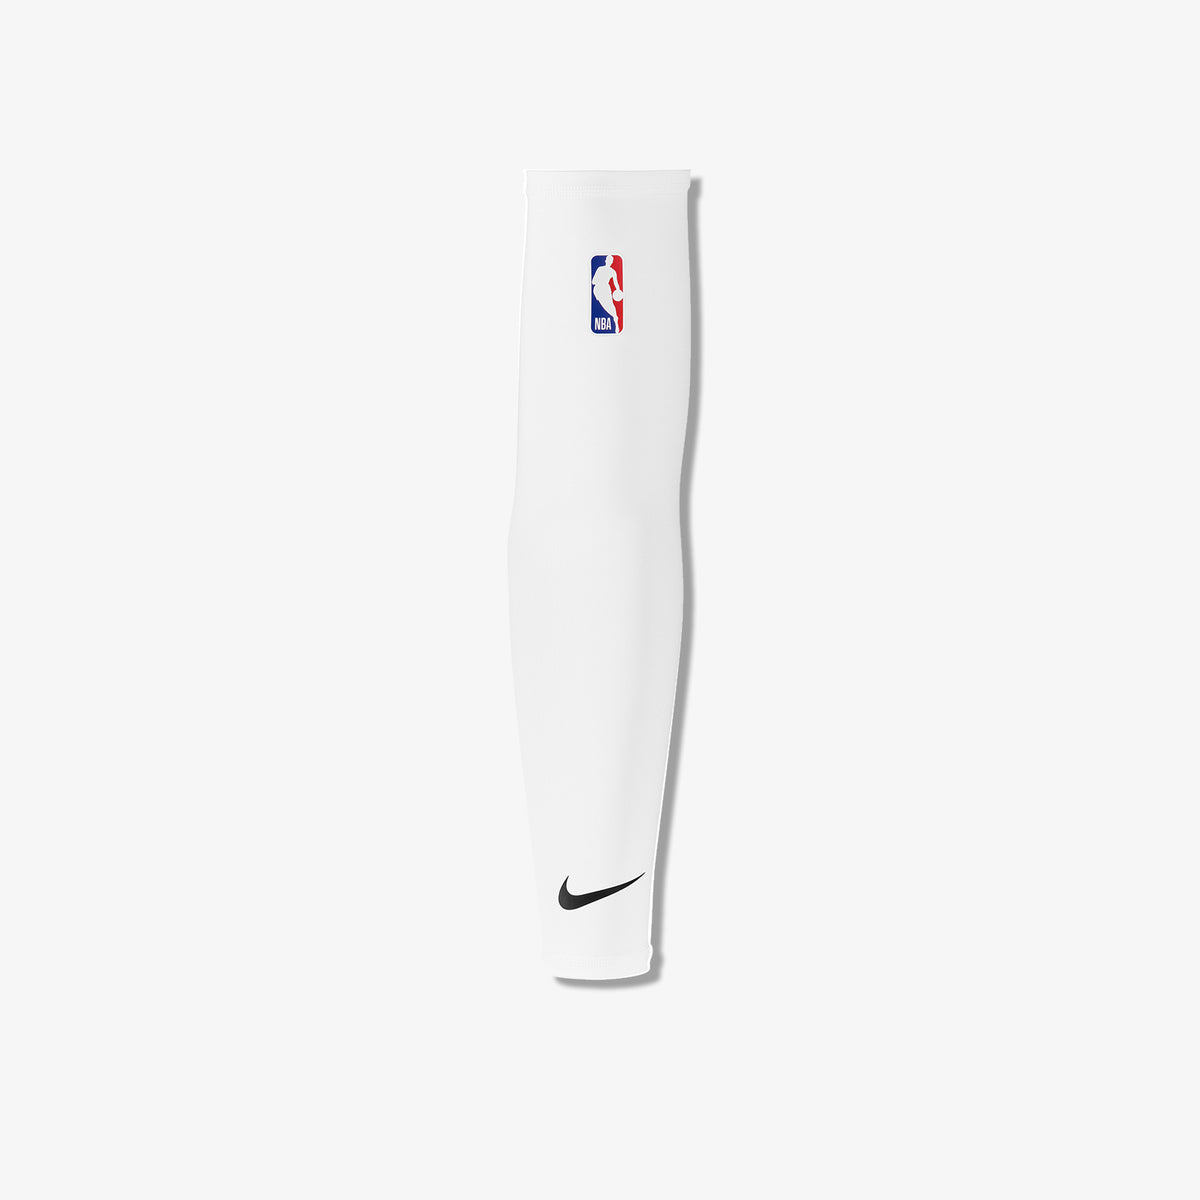 Nike Official On Court NBA Shooter Sleeve - White/Black